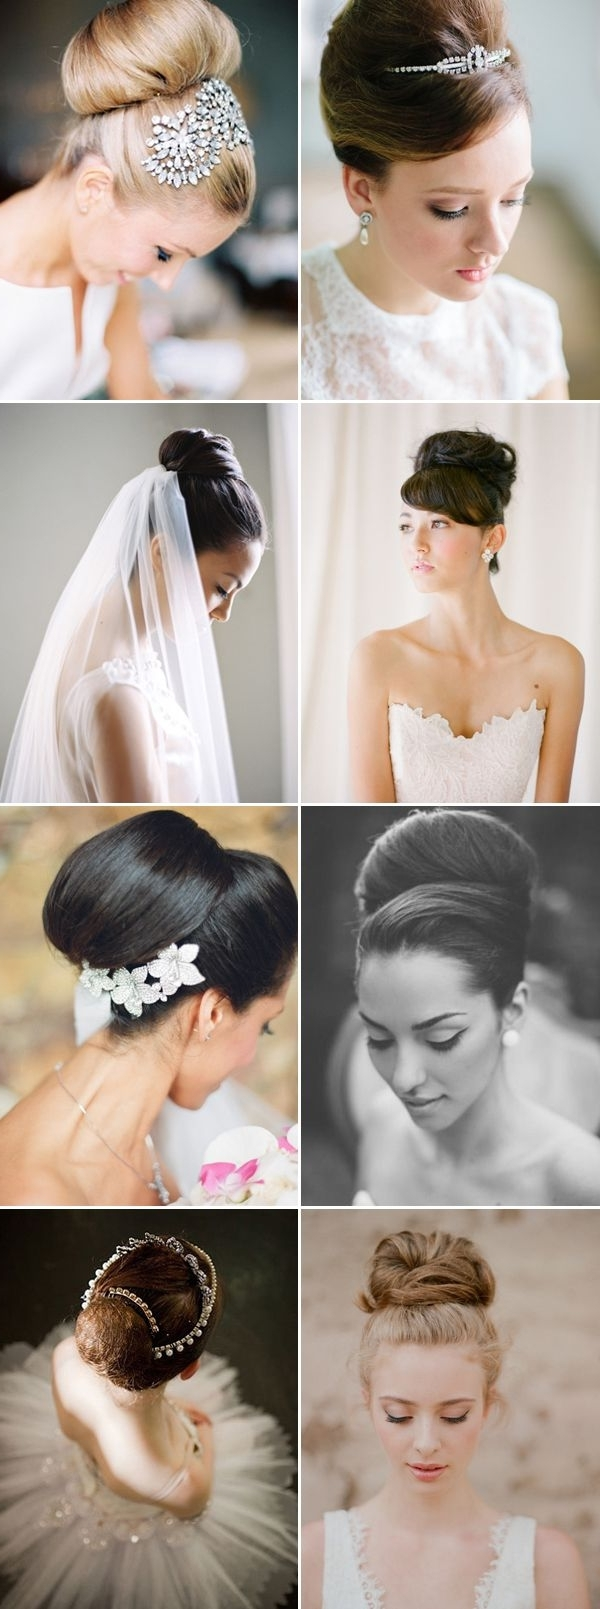 Audrey Hepburn Style Pertaining To Most Recent Audrey Hepburn Wedding Hairstyles (View 5 of 15)